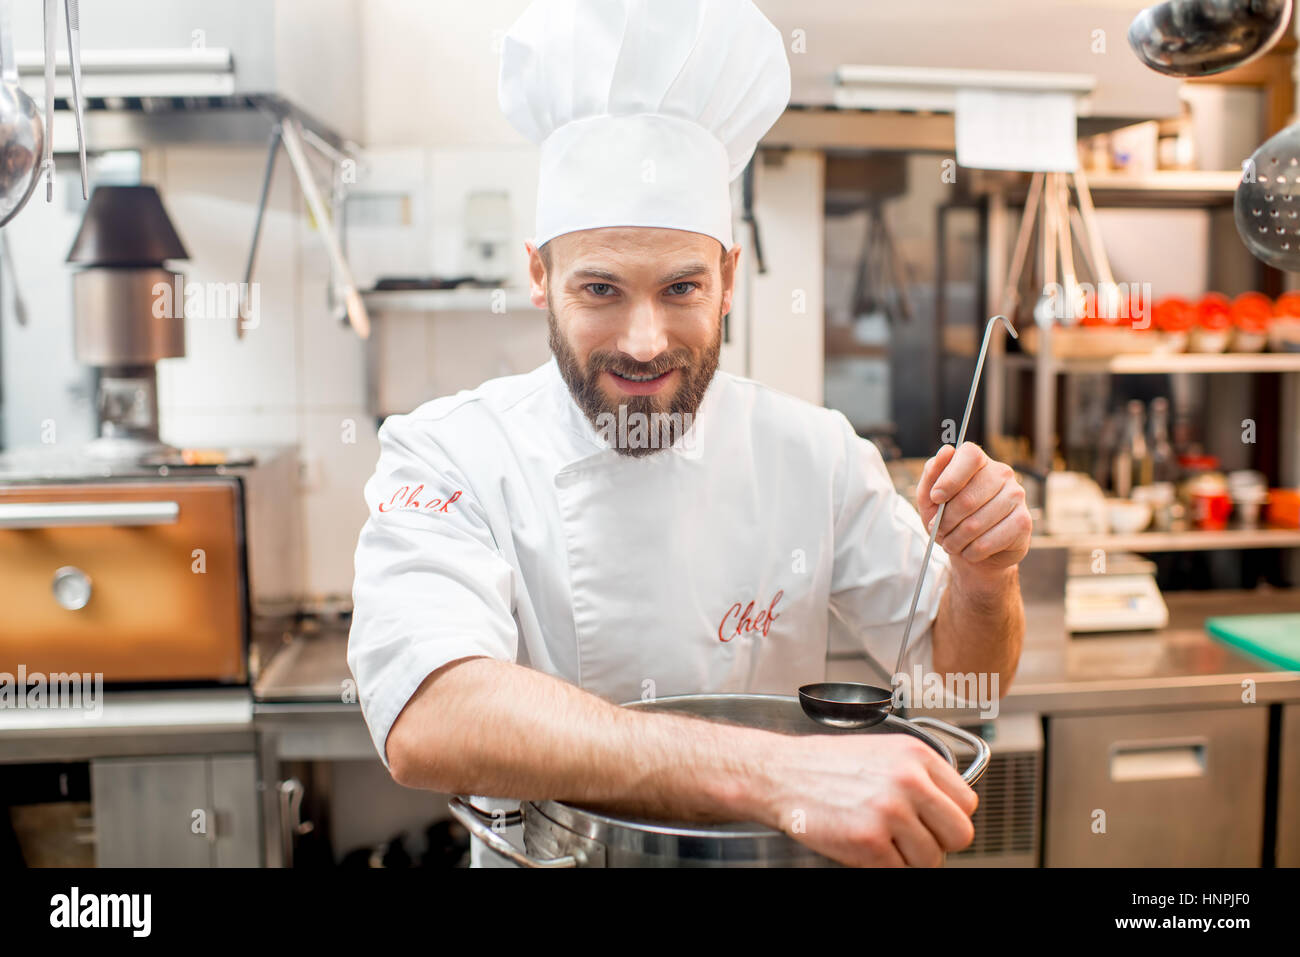 Portrait of a chef cook in uniform with big cooker at the restaurant kitchen - Stock Image